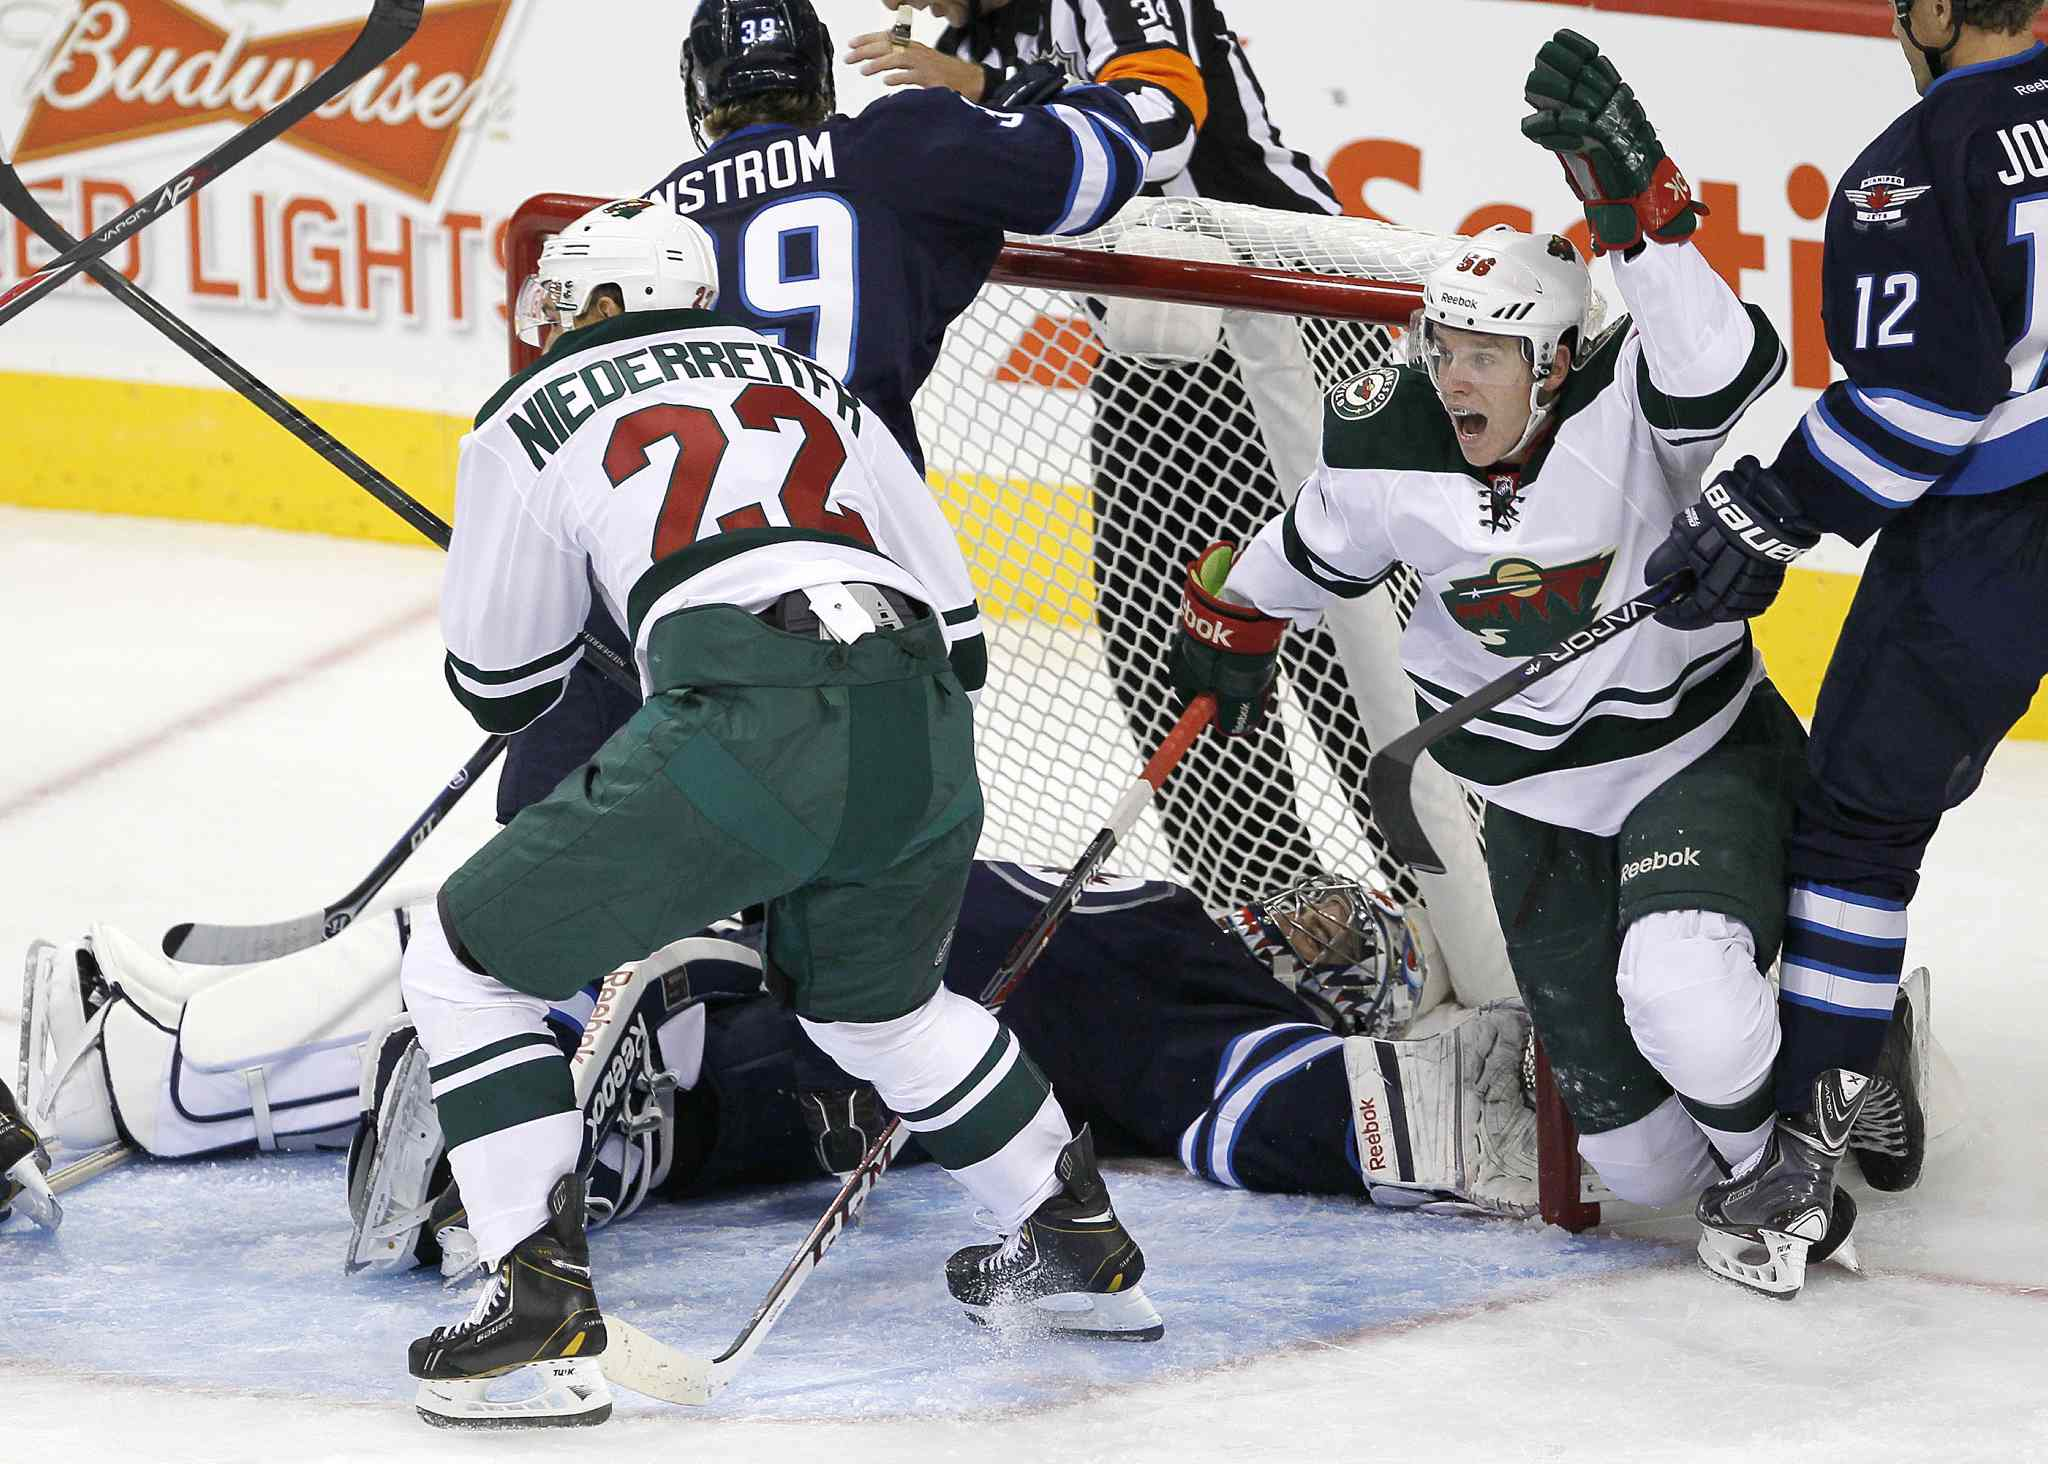 Minnesota Wild's Erik Haula (56) and Nino Niederreiter (22) celebrate a goal by teammate Mathew Dumba (not shown) against Winnipeg Jets goaltender Al Montoya during the first period.